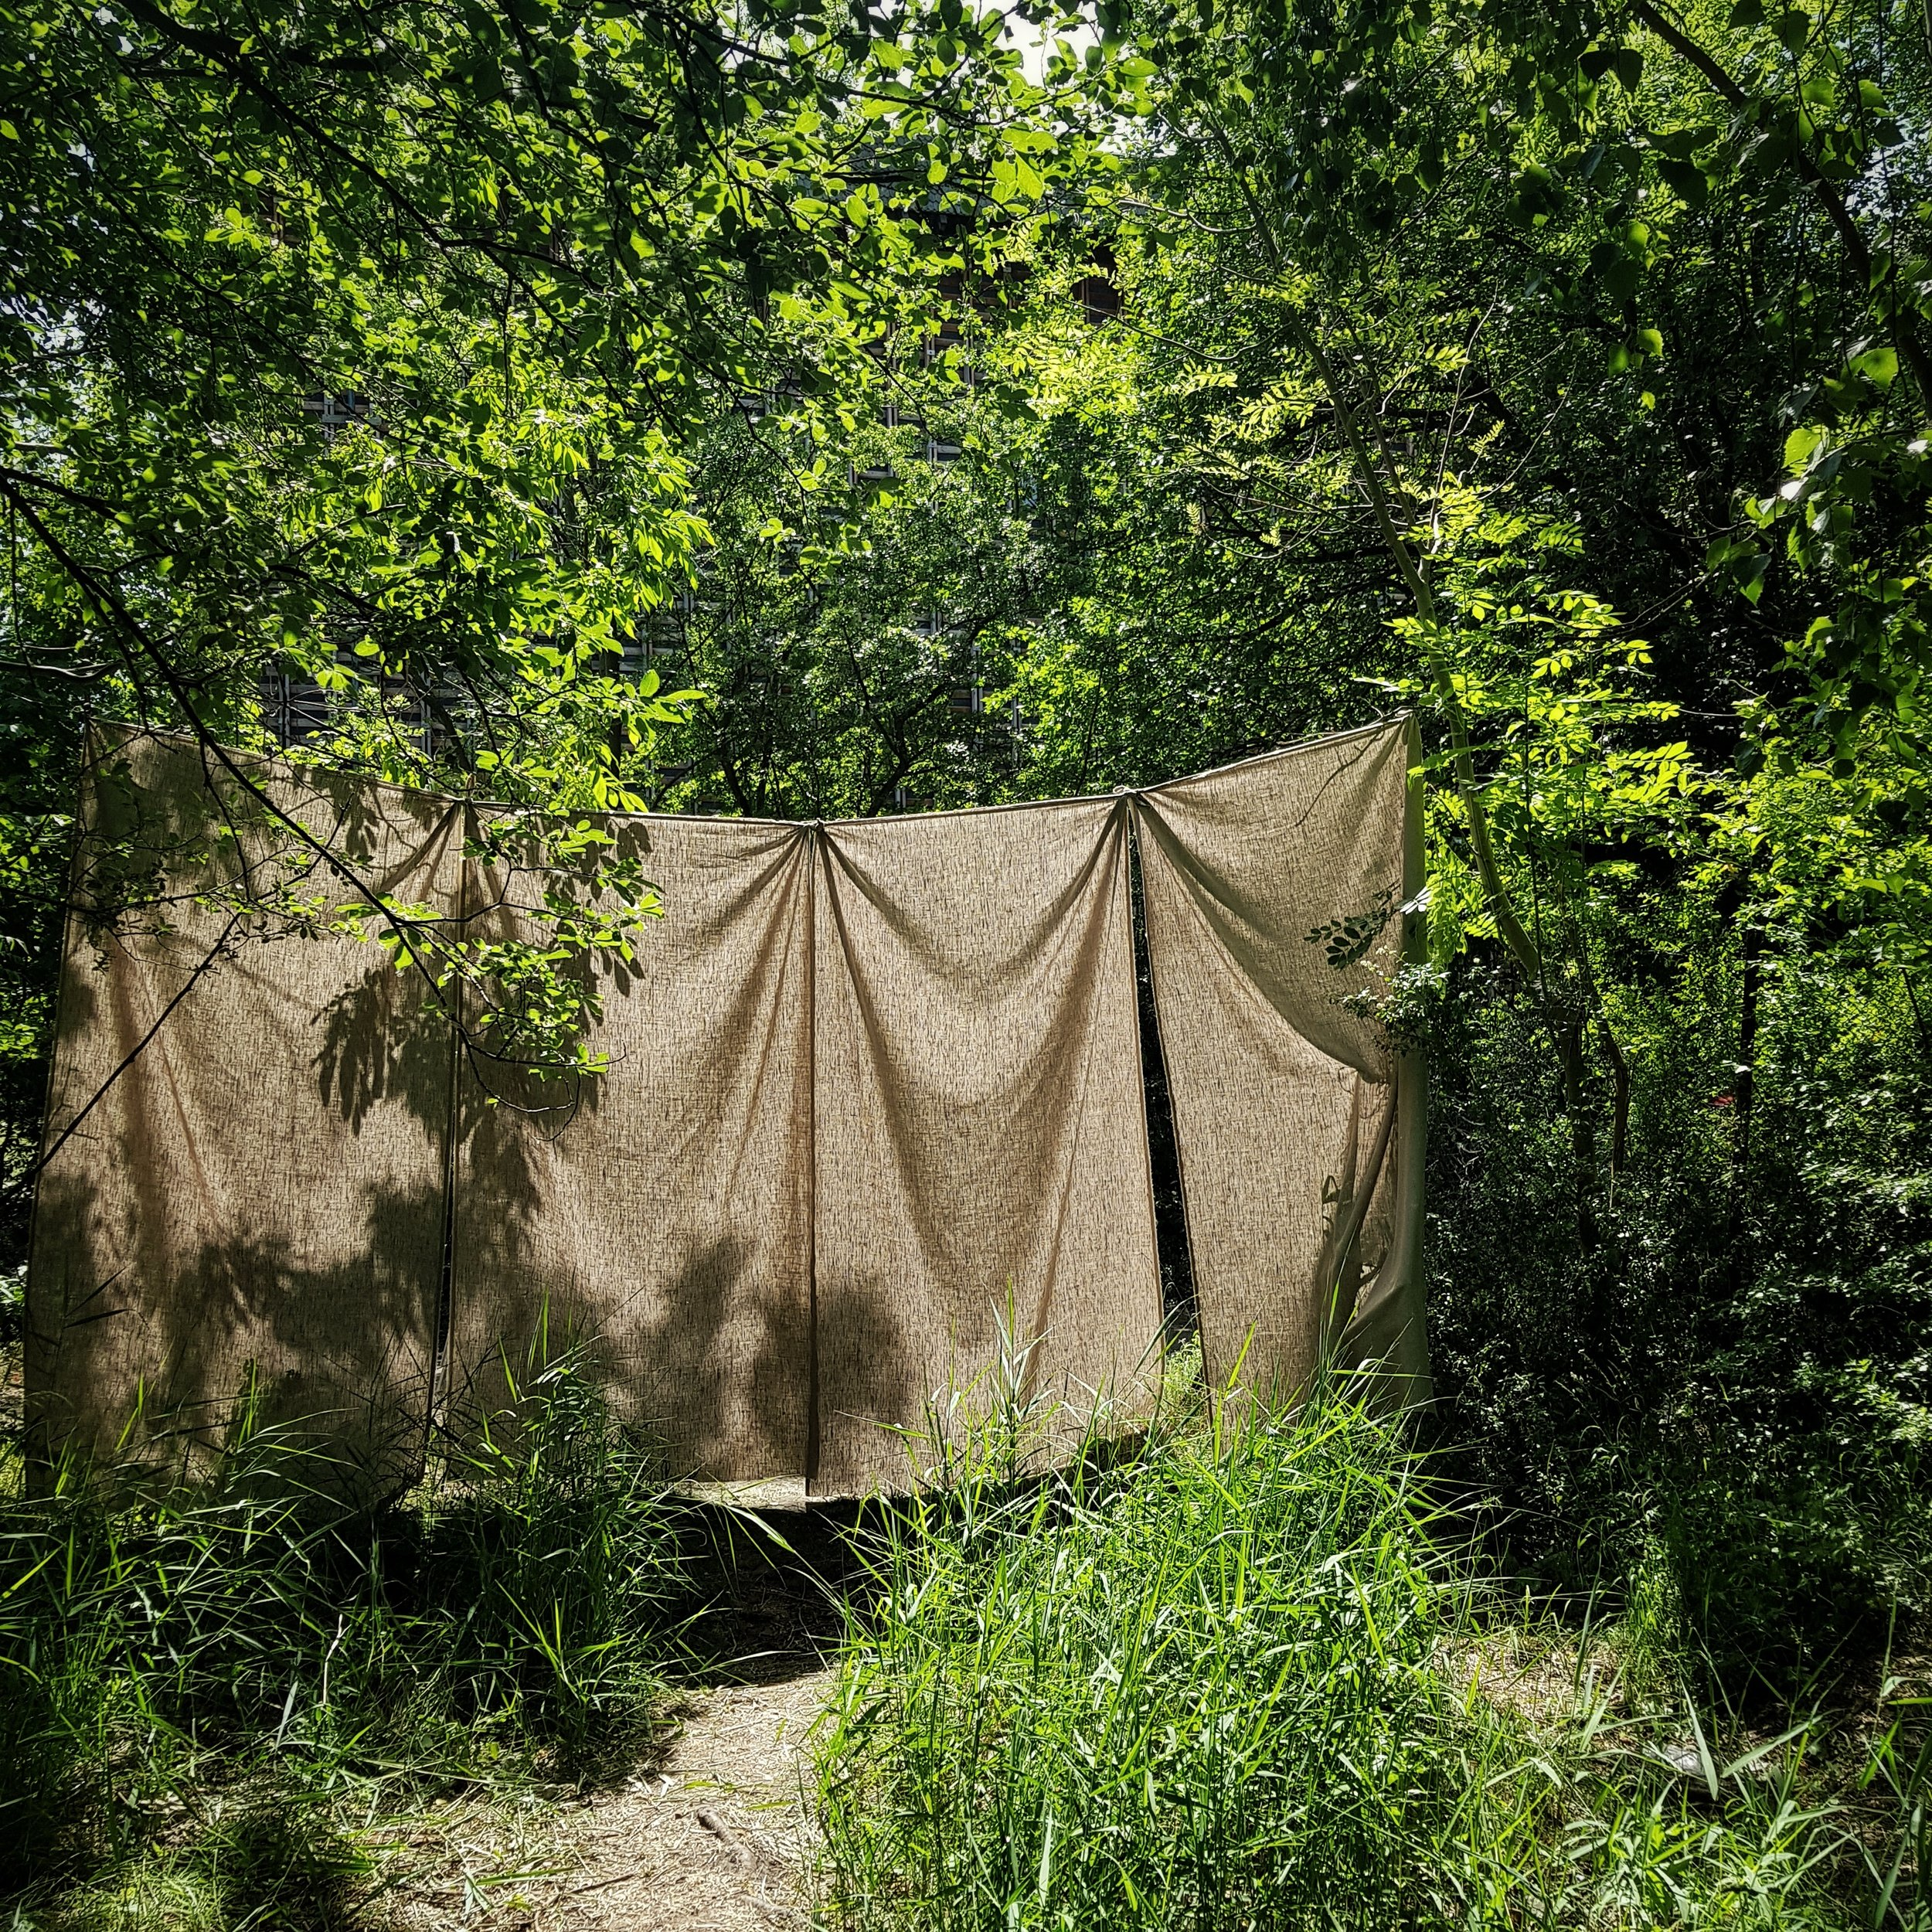 Day 160 - June 09: Drapes in the woods